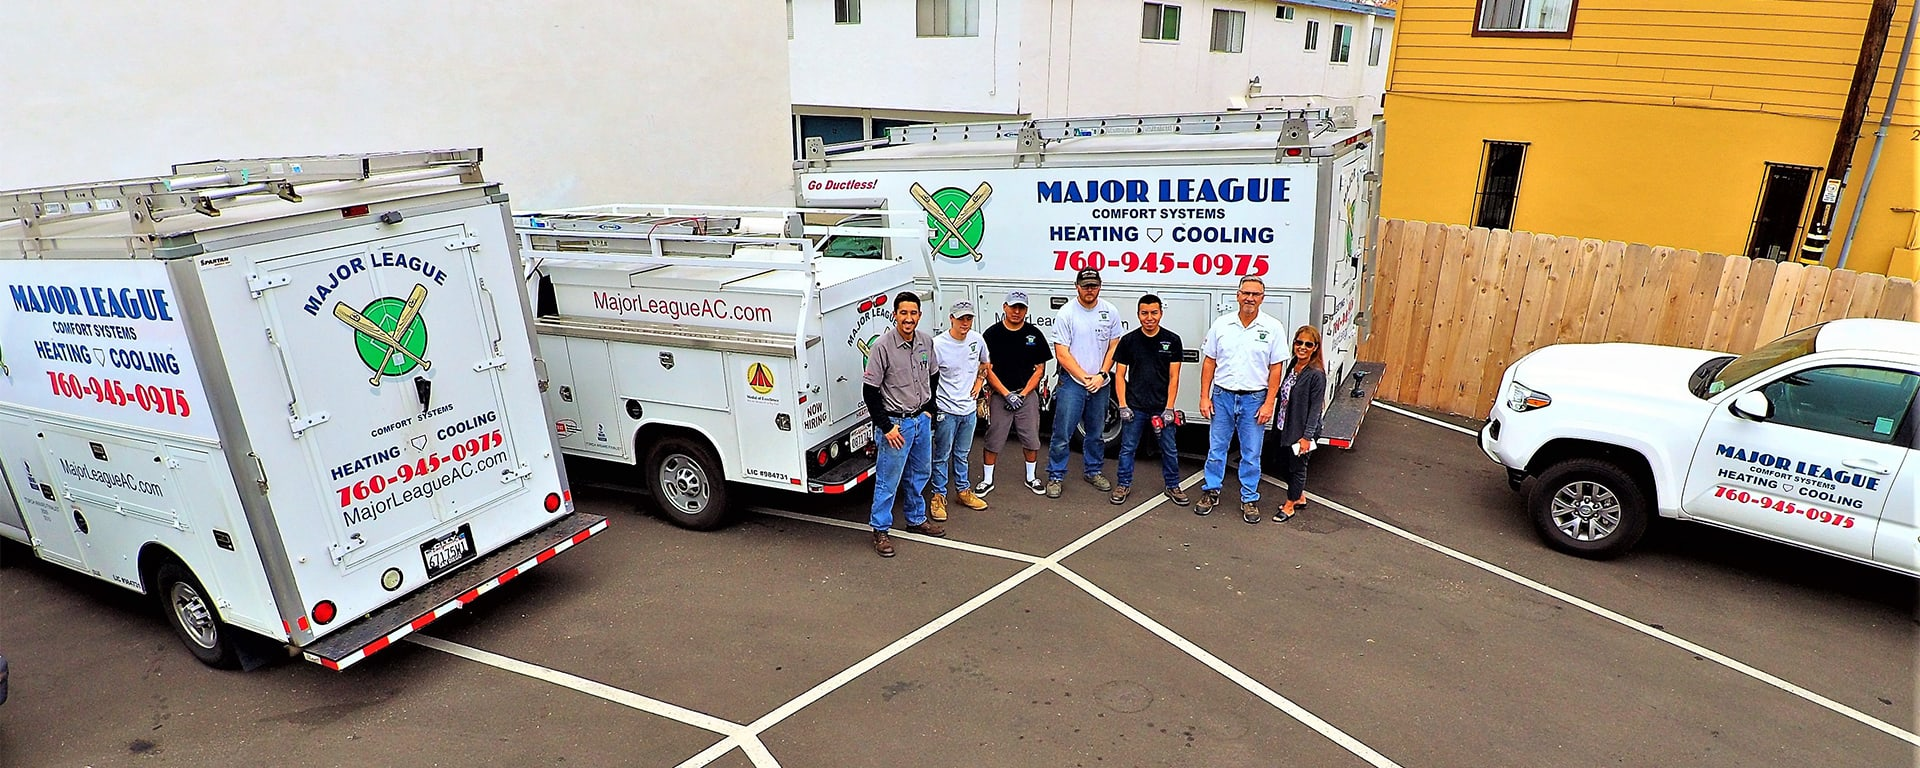 Major League team and trucks